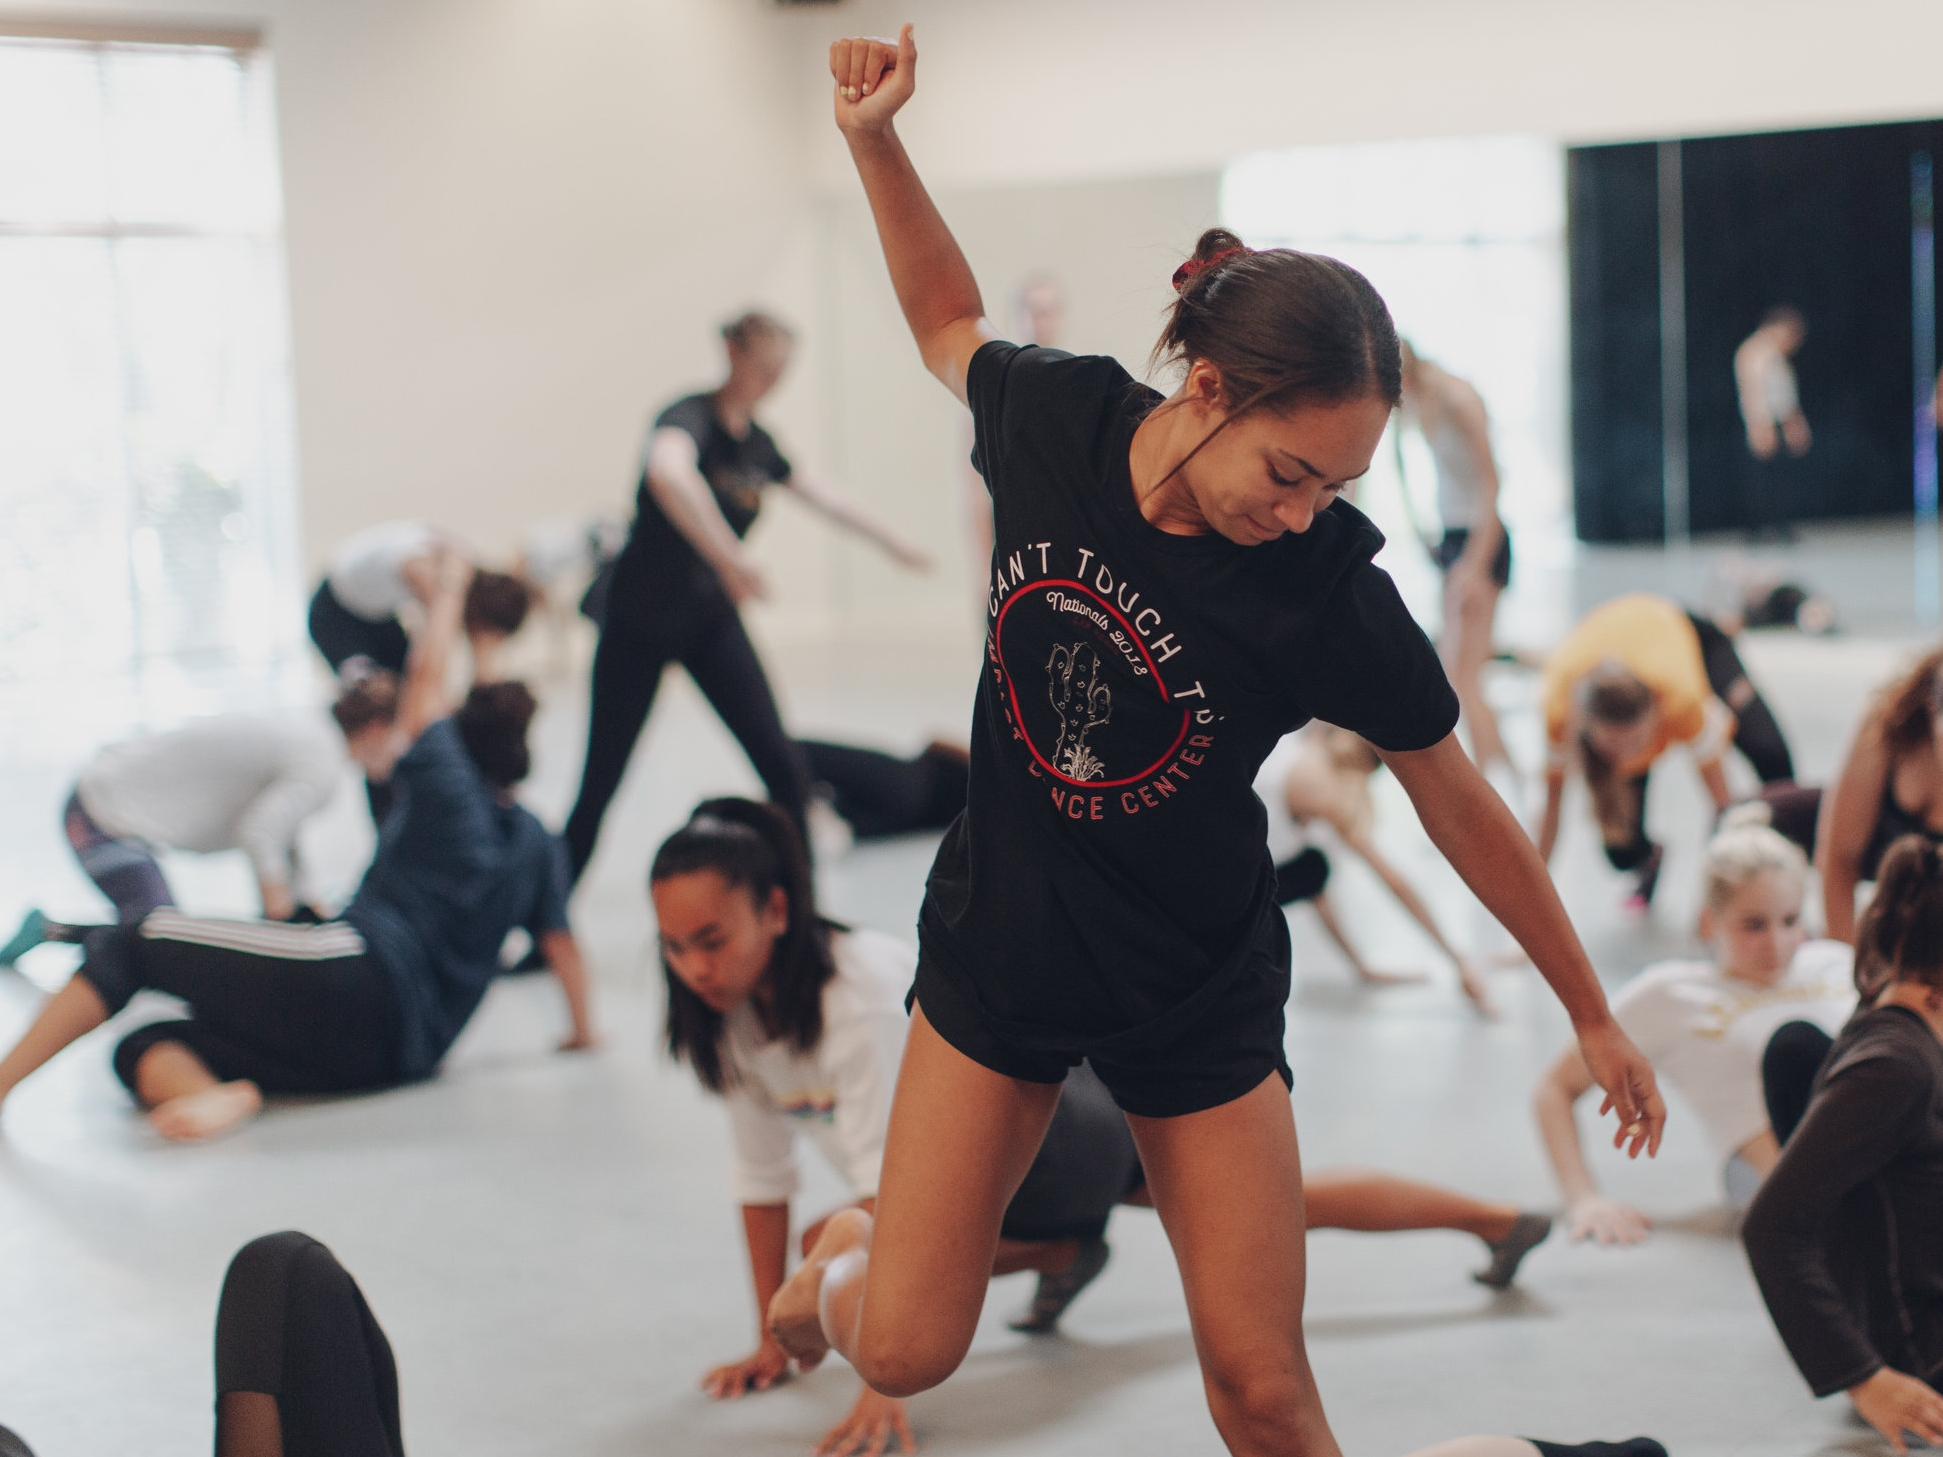 2. Share. - Have you attended the Backhausdance Summer Intensives? Share your story. Let the world know the impact that #BDSI has made on your life. Tag @backhausdance and use hashtags #GiftDance and #ShareBDLove.